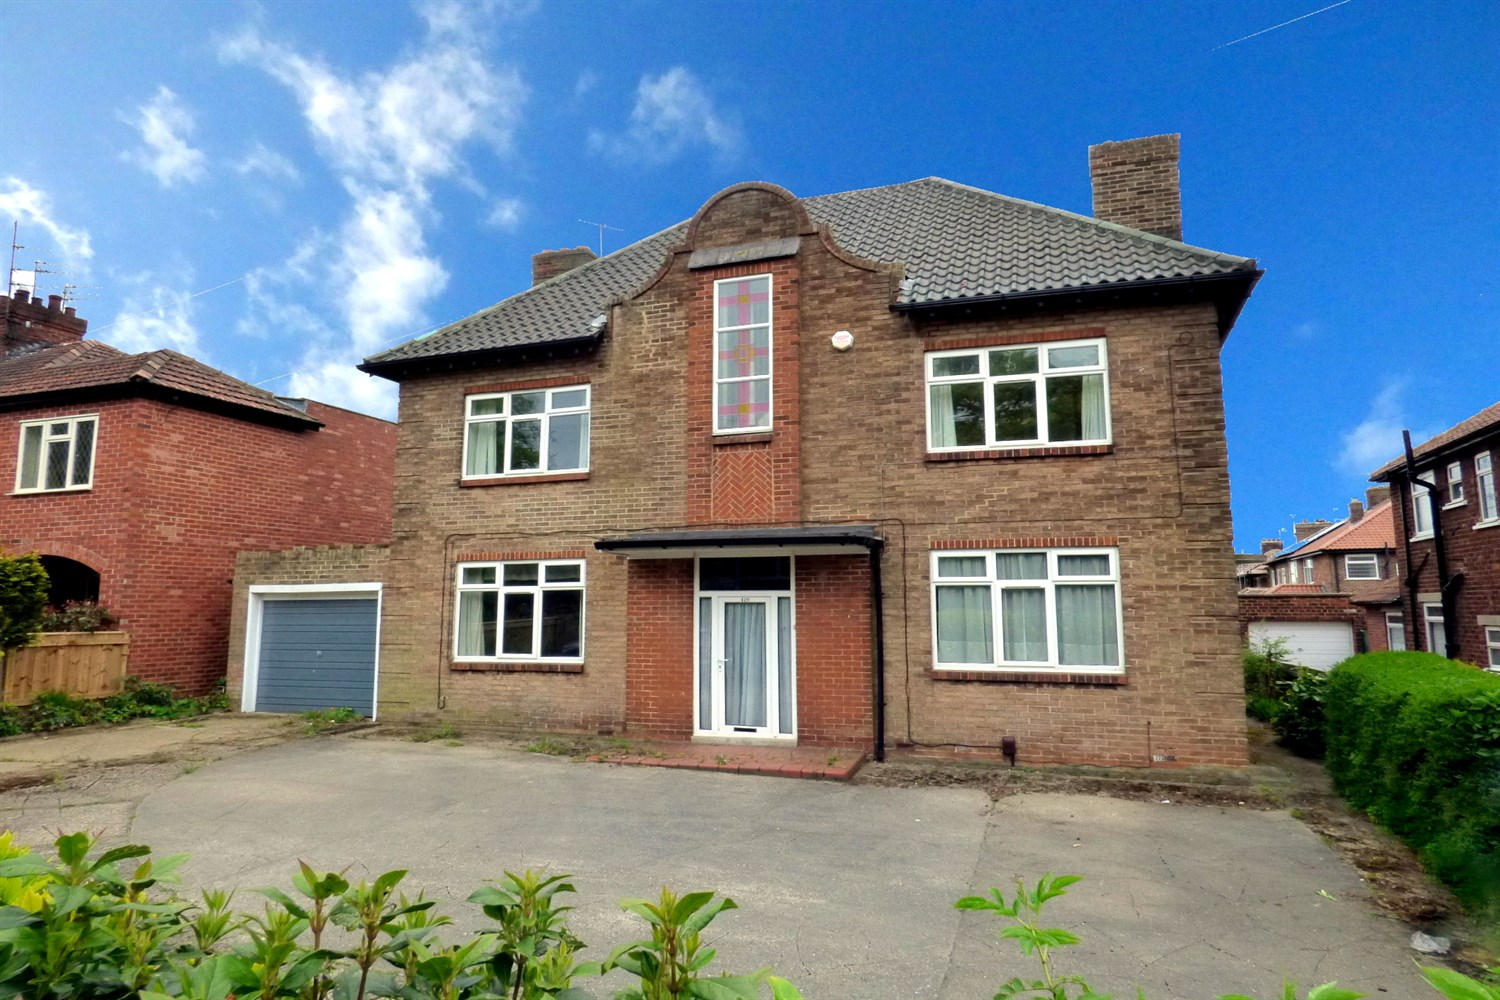 Normanby Road, Normanby, TS6